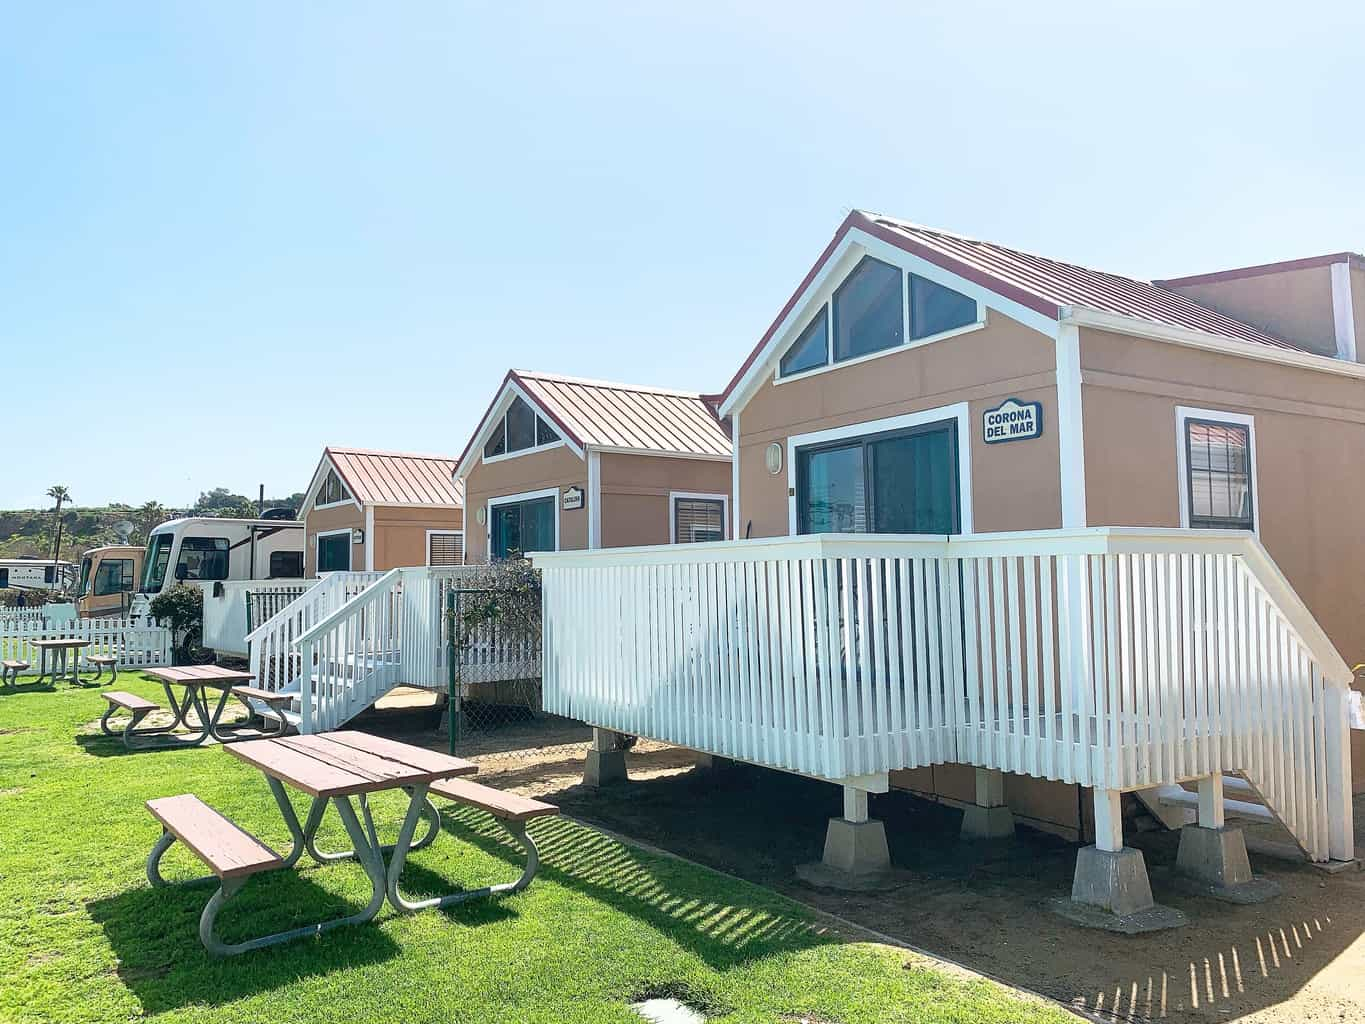 Newport Dunes Waterfront Resort has over 110 acres of gorgeous beach front property with wonderful amenities such as a waterpark, stand up paddle boarding, swimming, kayaking and a playground on the beach for kids.